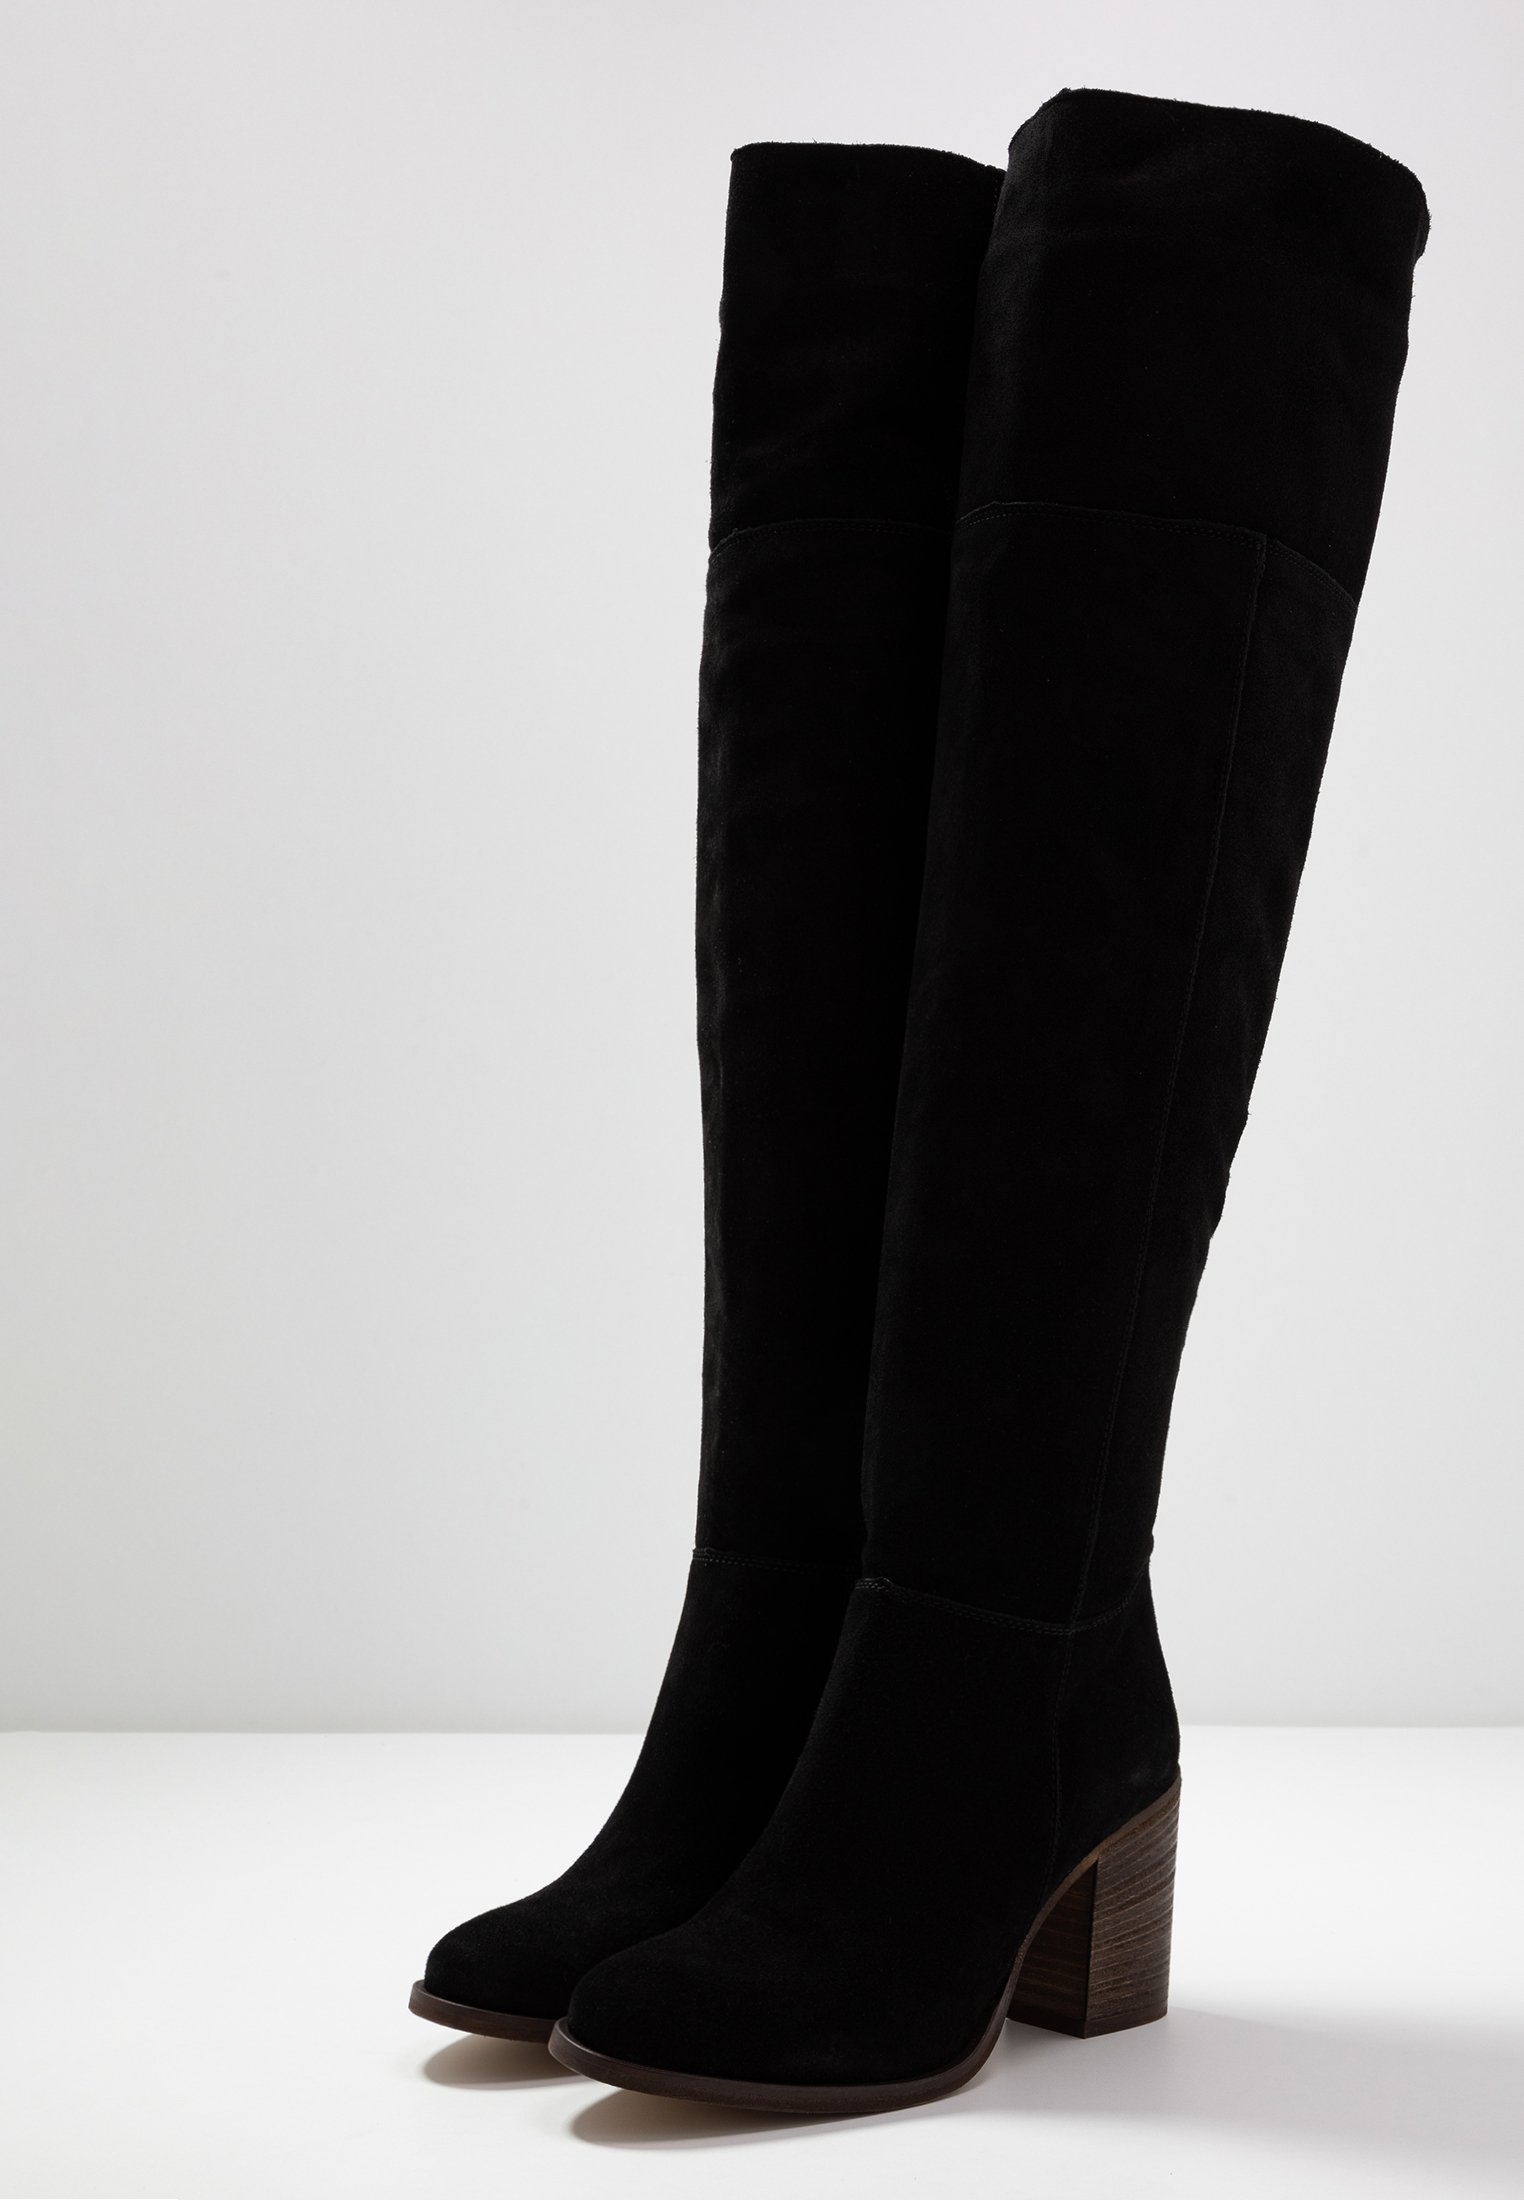 Up To Date Cheapest Anna Field LEATHER BOOTS - Over-the-knee boots - black | women's shoes 2020 eimq0